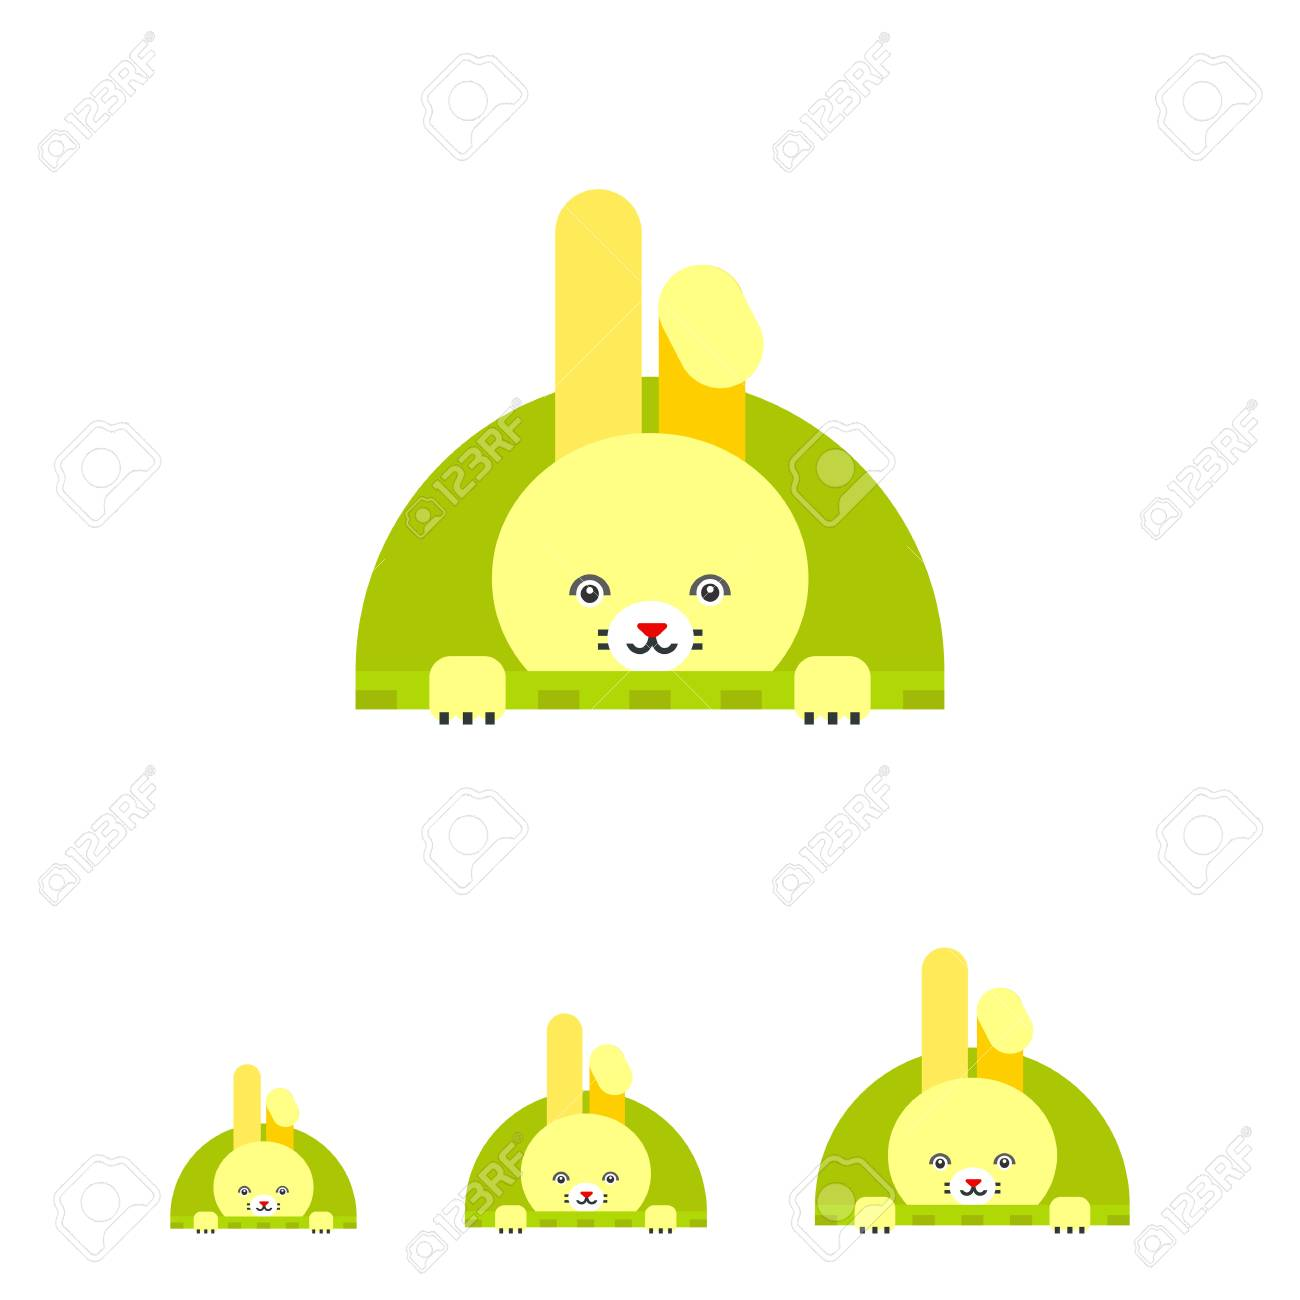 Icon Of Cute Yellow Easter Bunny With One Folded Ear In Green